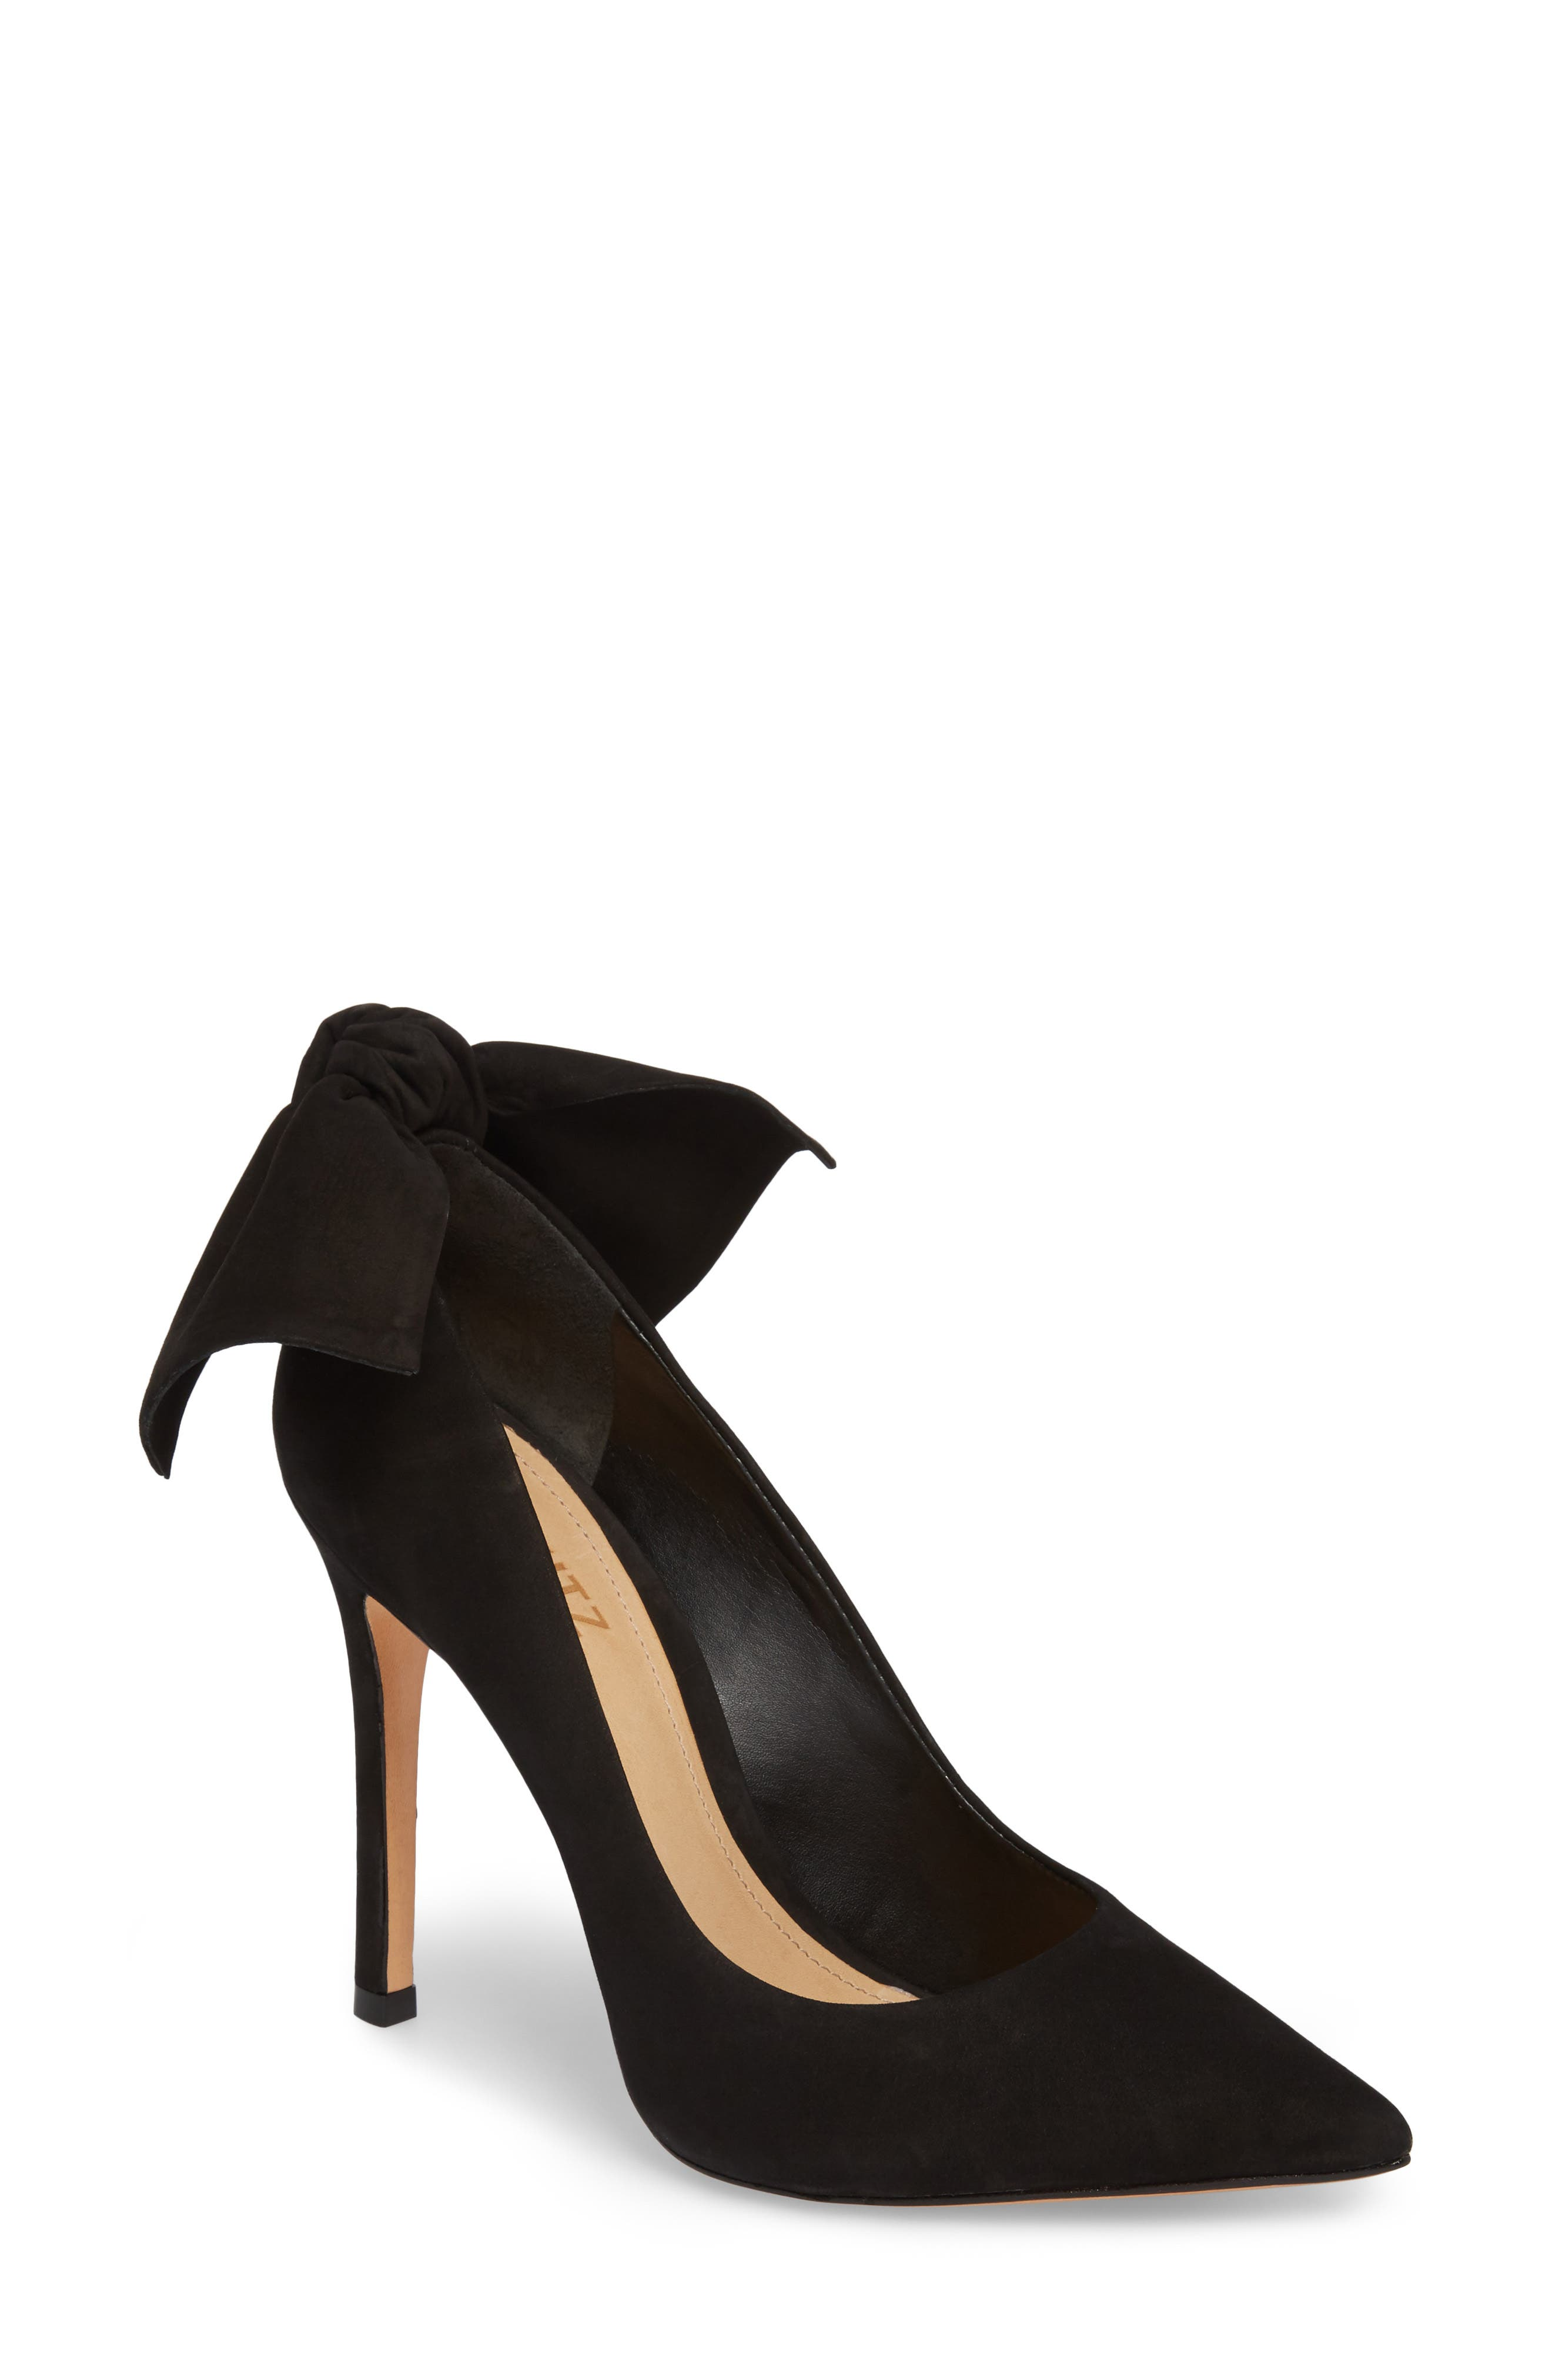 SCHUTZ Blasiana Bow Pump, Main, color, 001